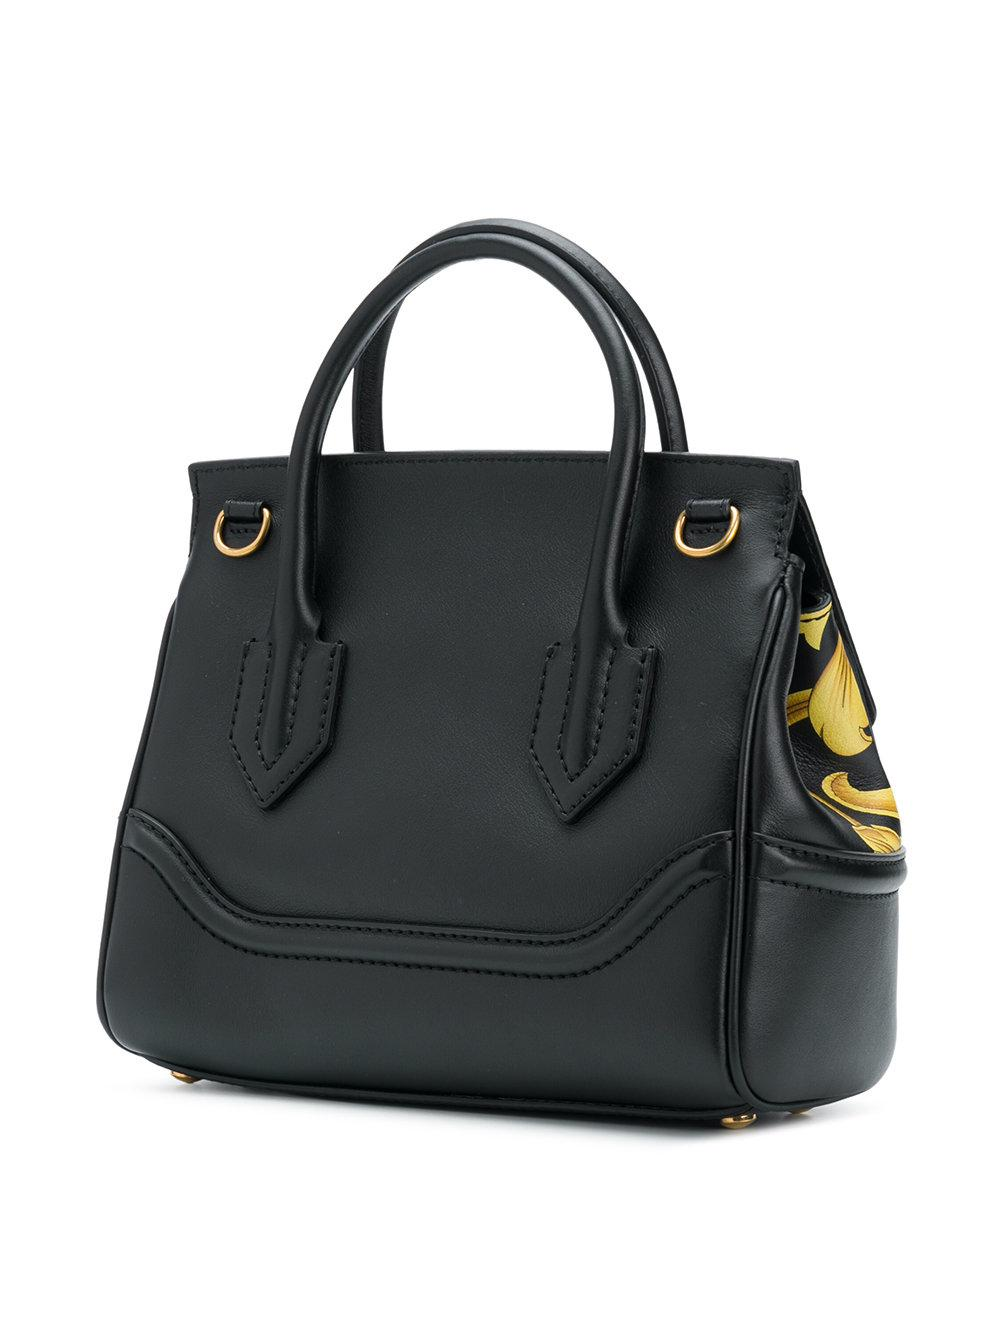 Versace Leather Palazzo Empire Printed Tote in Black